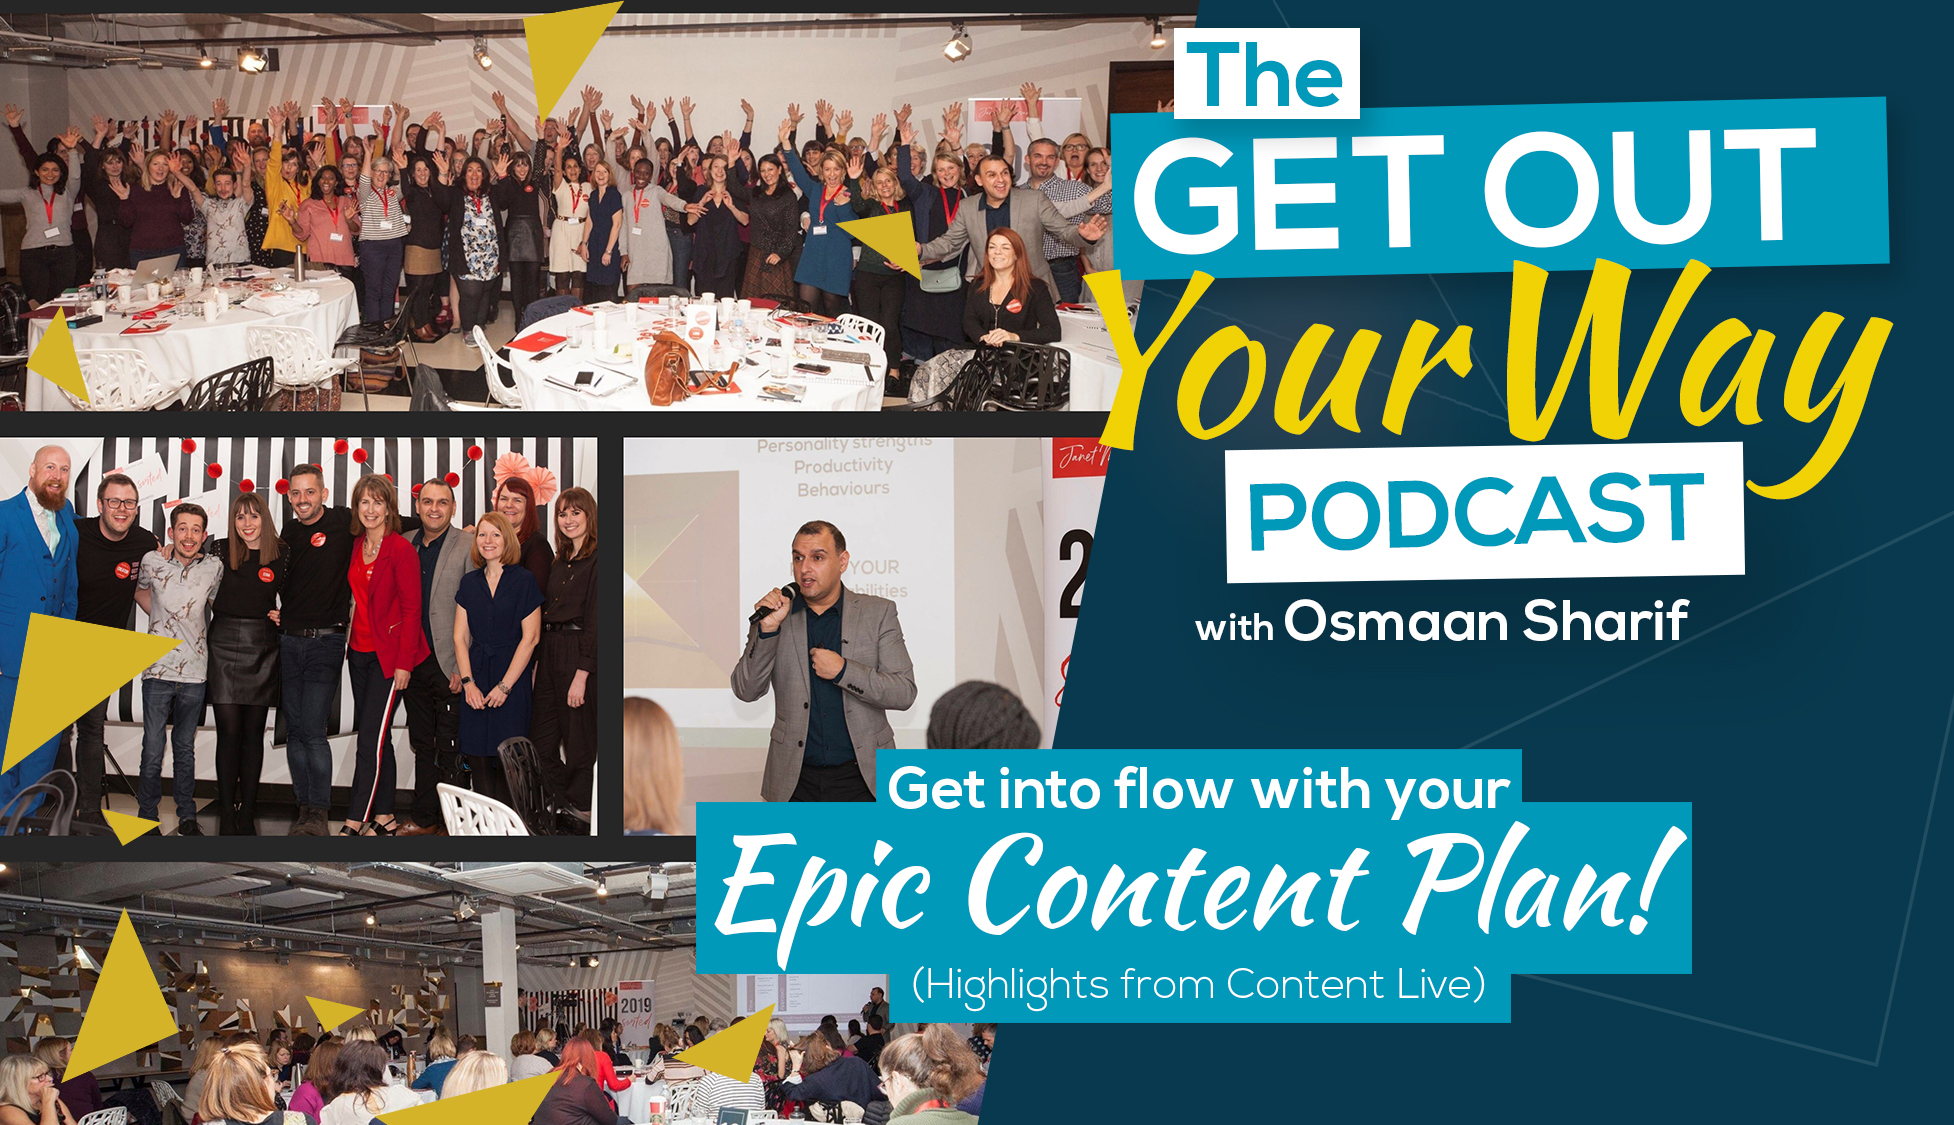 Get into flow with your epic content plan